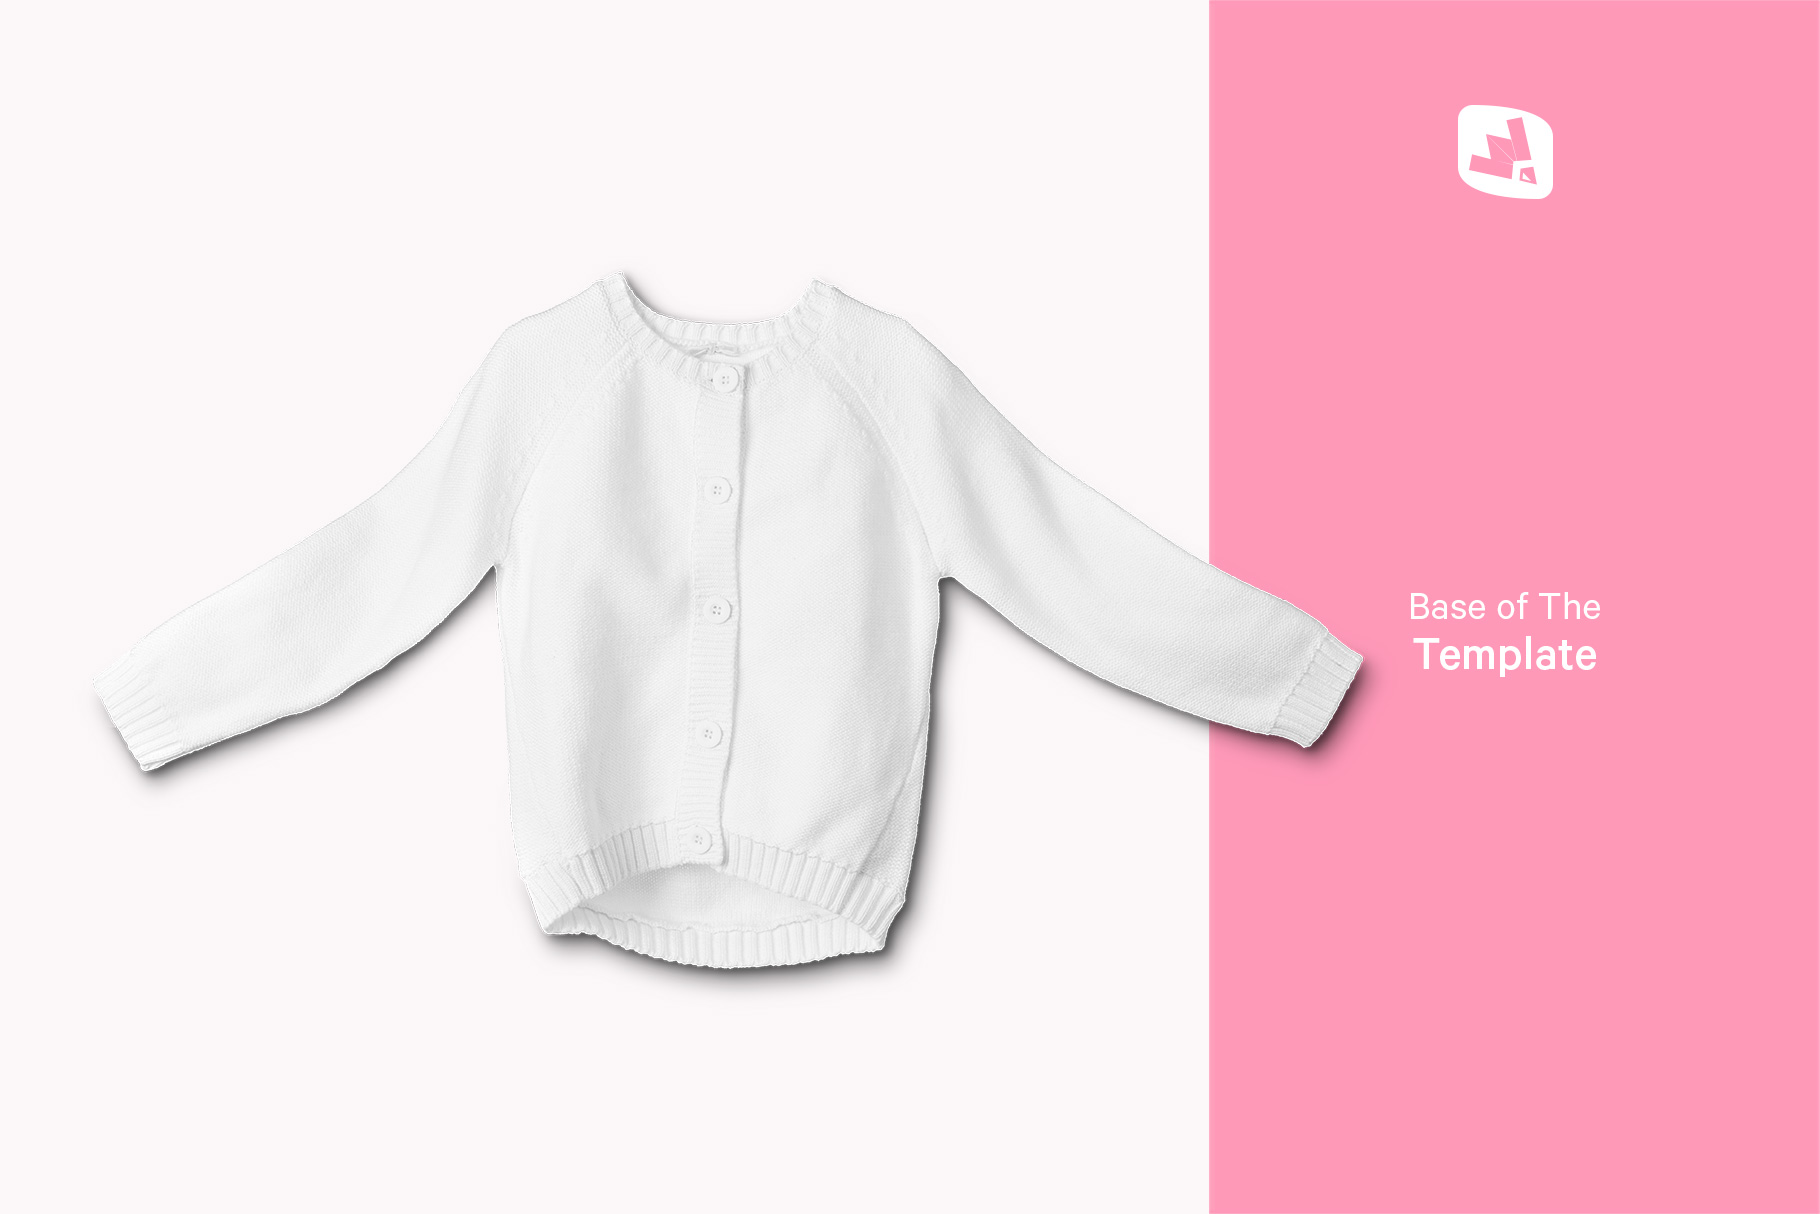 base image of the top view baby sweater mockup